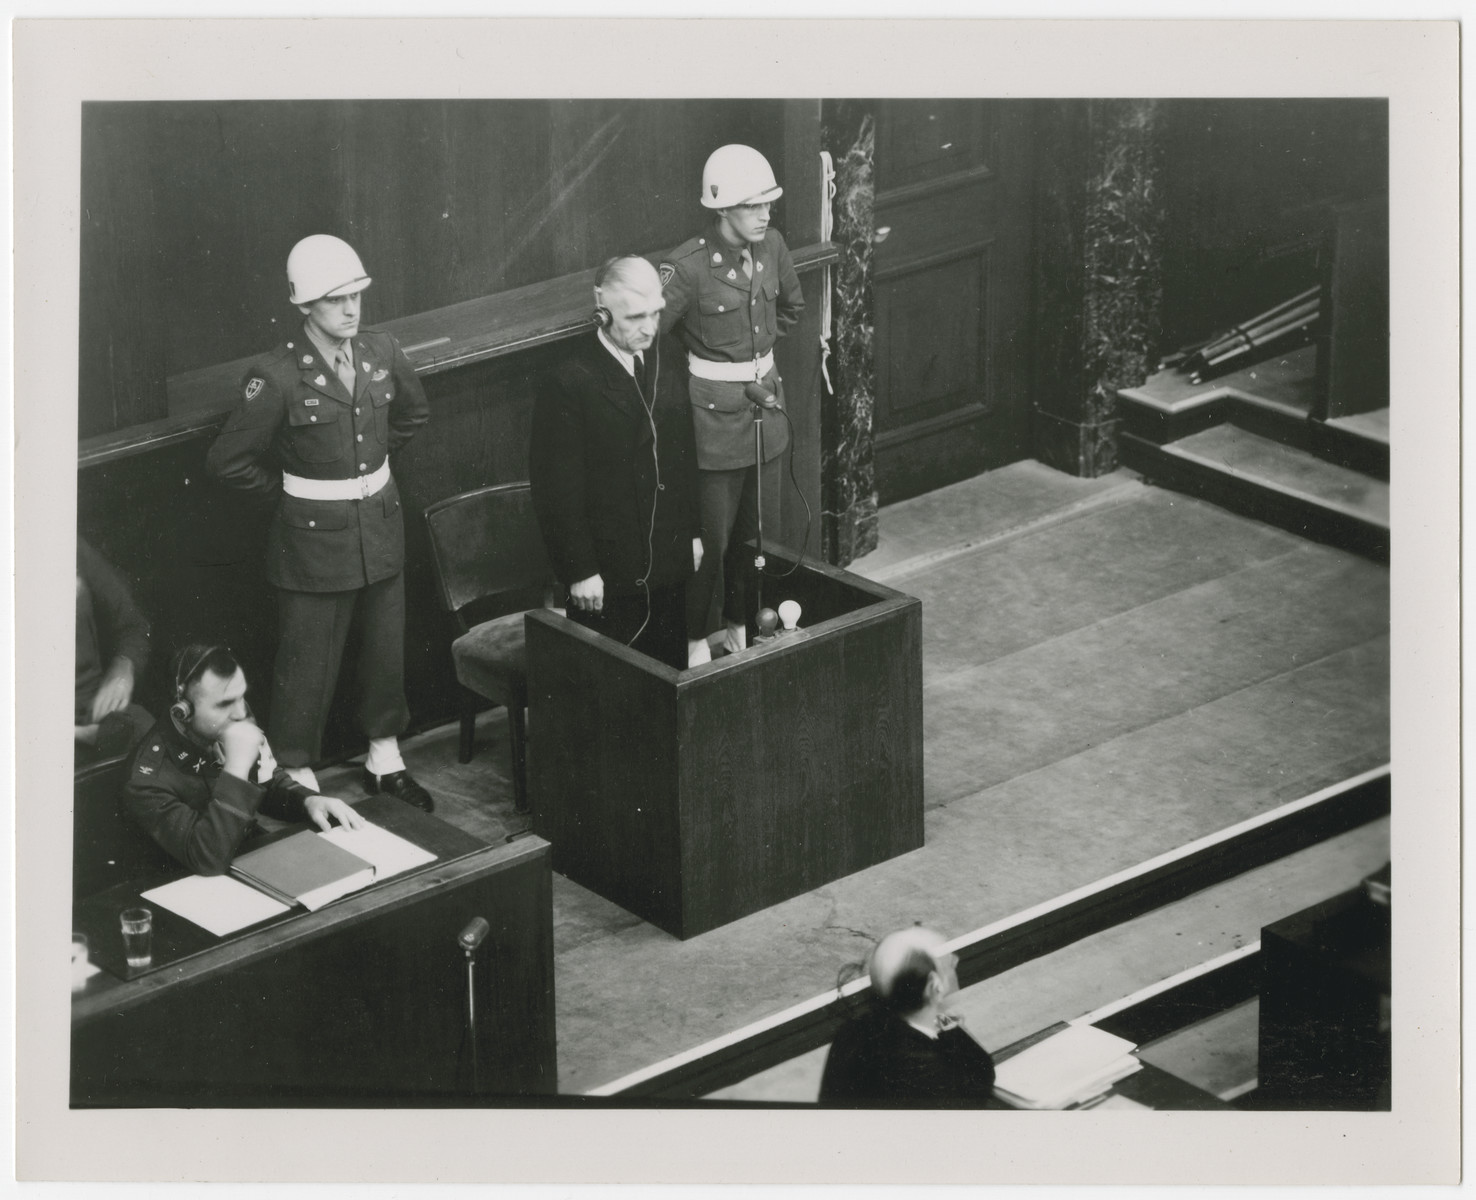 Photograph of defendant [probably Hjalmar Schacht] stands at the defendant's dock at the International Military Tribunal.  Schacht was later acquitted of charges.